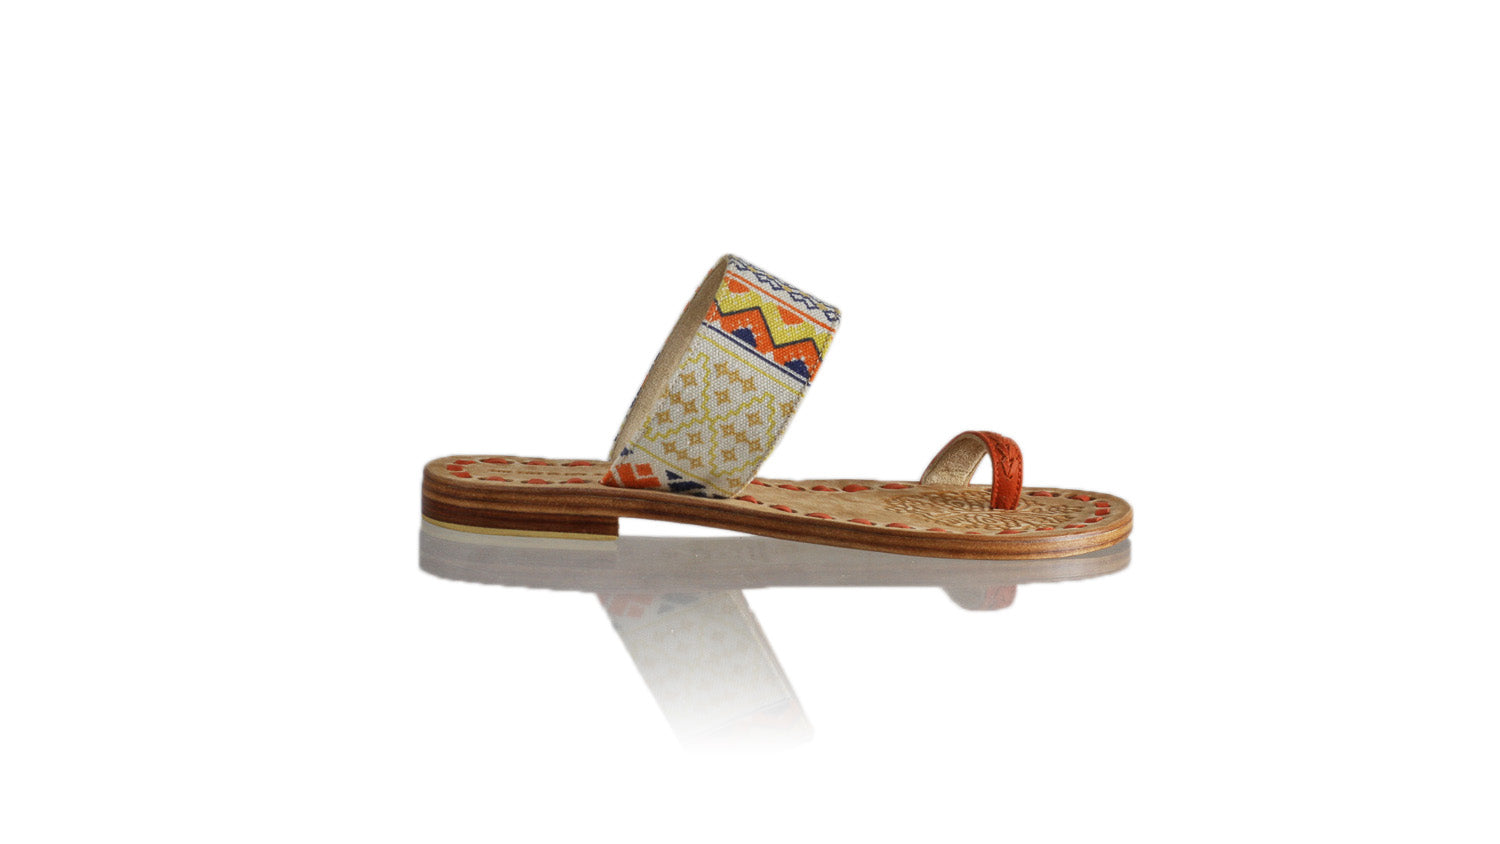 Leather-shoes-Arini 20mm Flat - Orange & Yellow and Orange Canvas-sandals flat-NILUH DJELANTIK-NILUH DJELANTIK